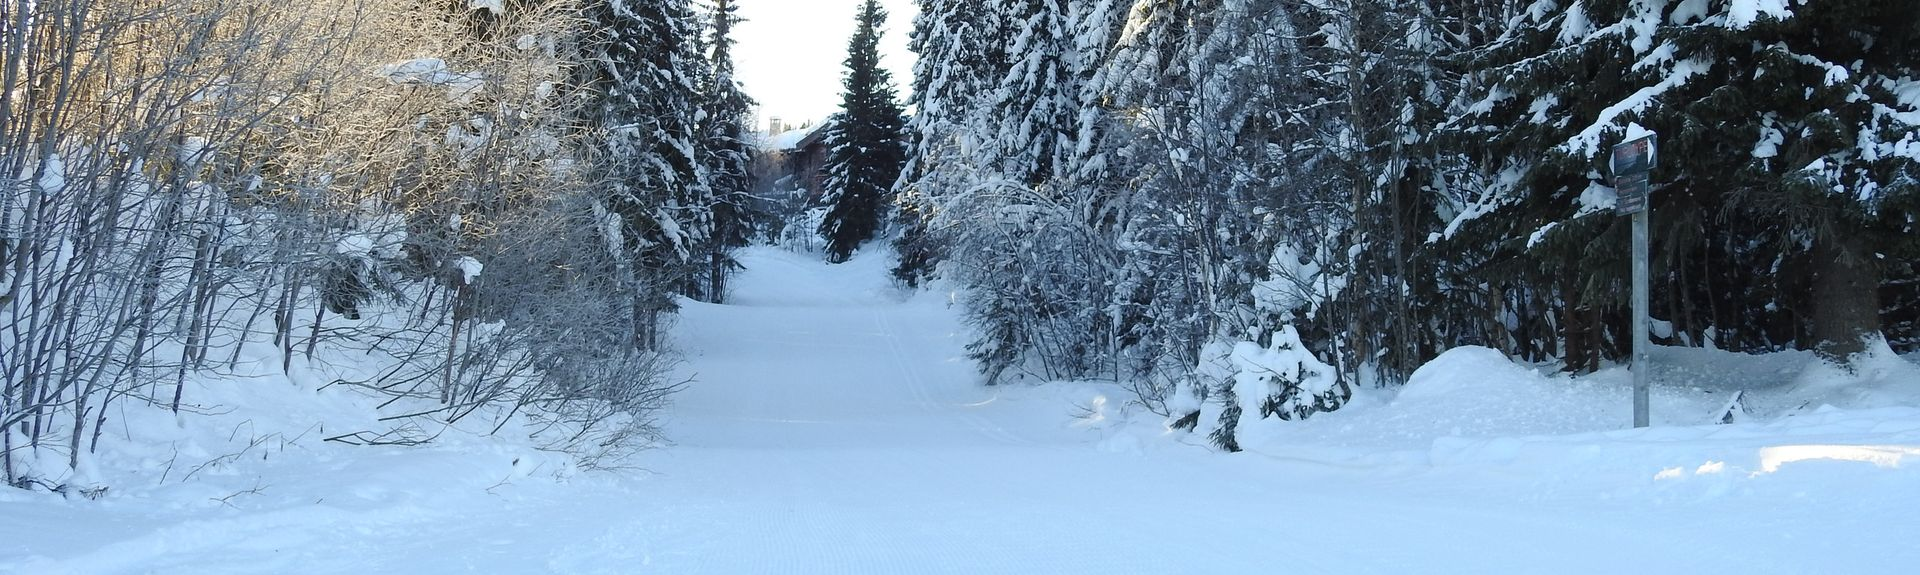 Trysil, Hedmark, Norge